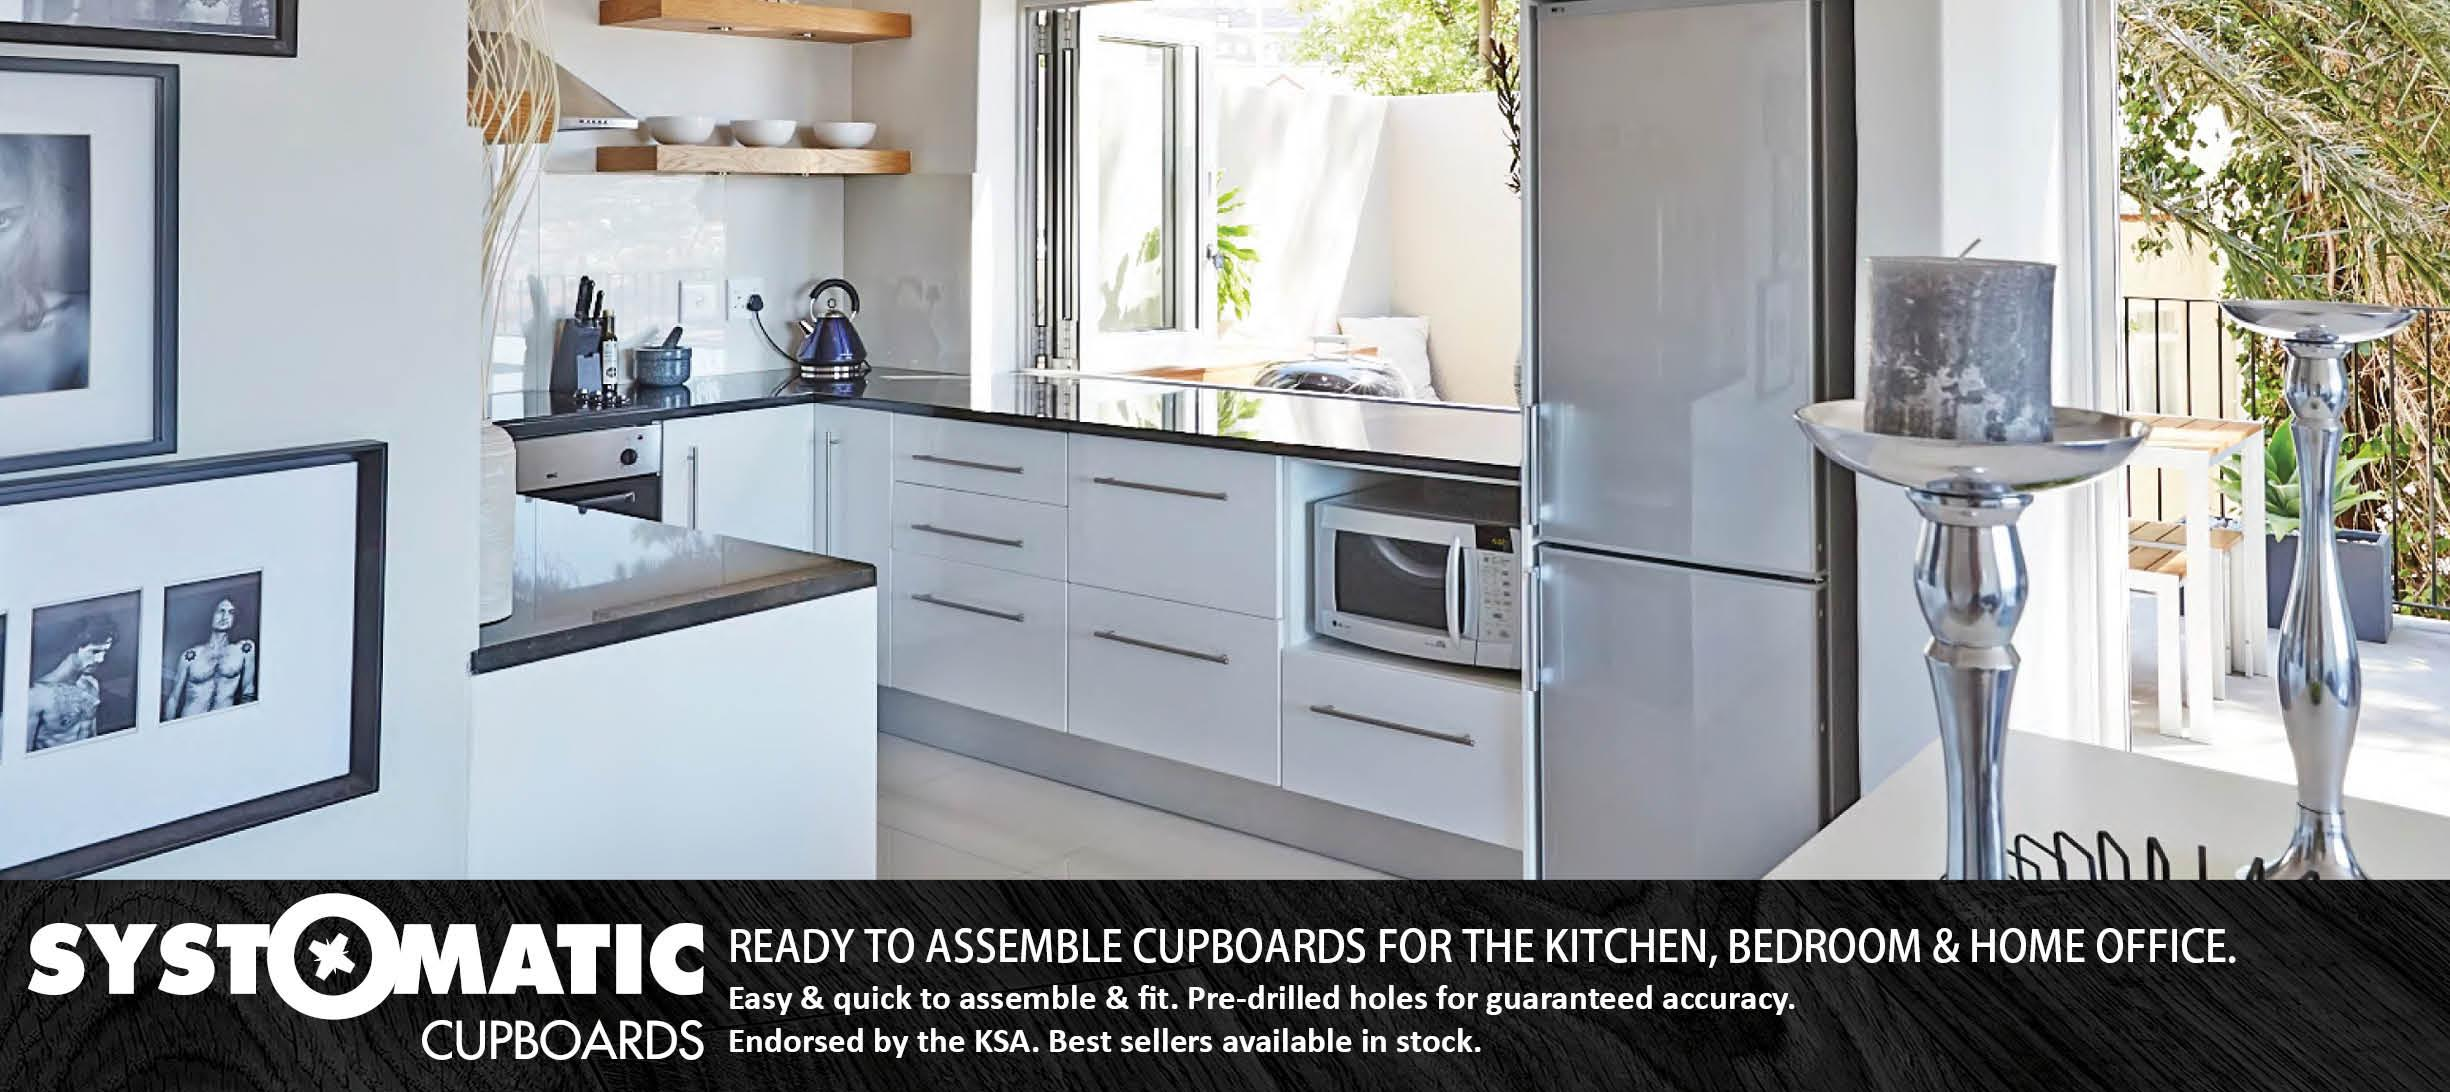 Systomatic Ready-To-Assemble Cupboards | Lansdowne Boards